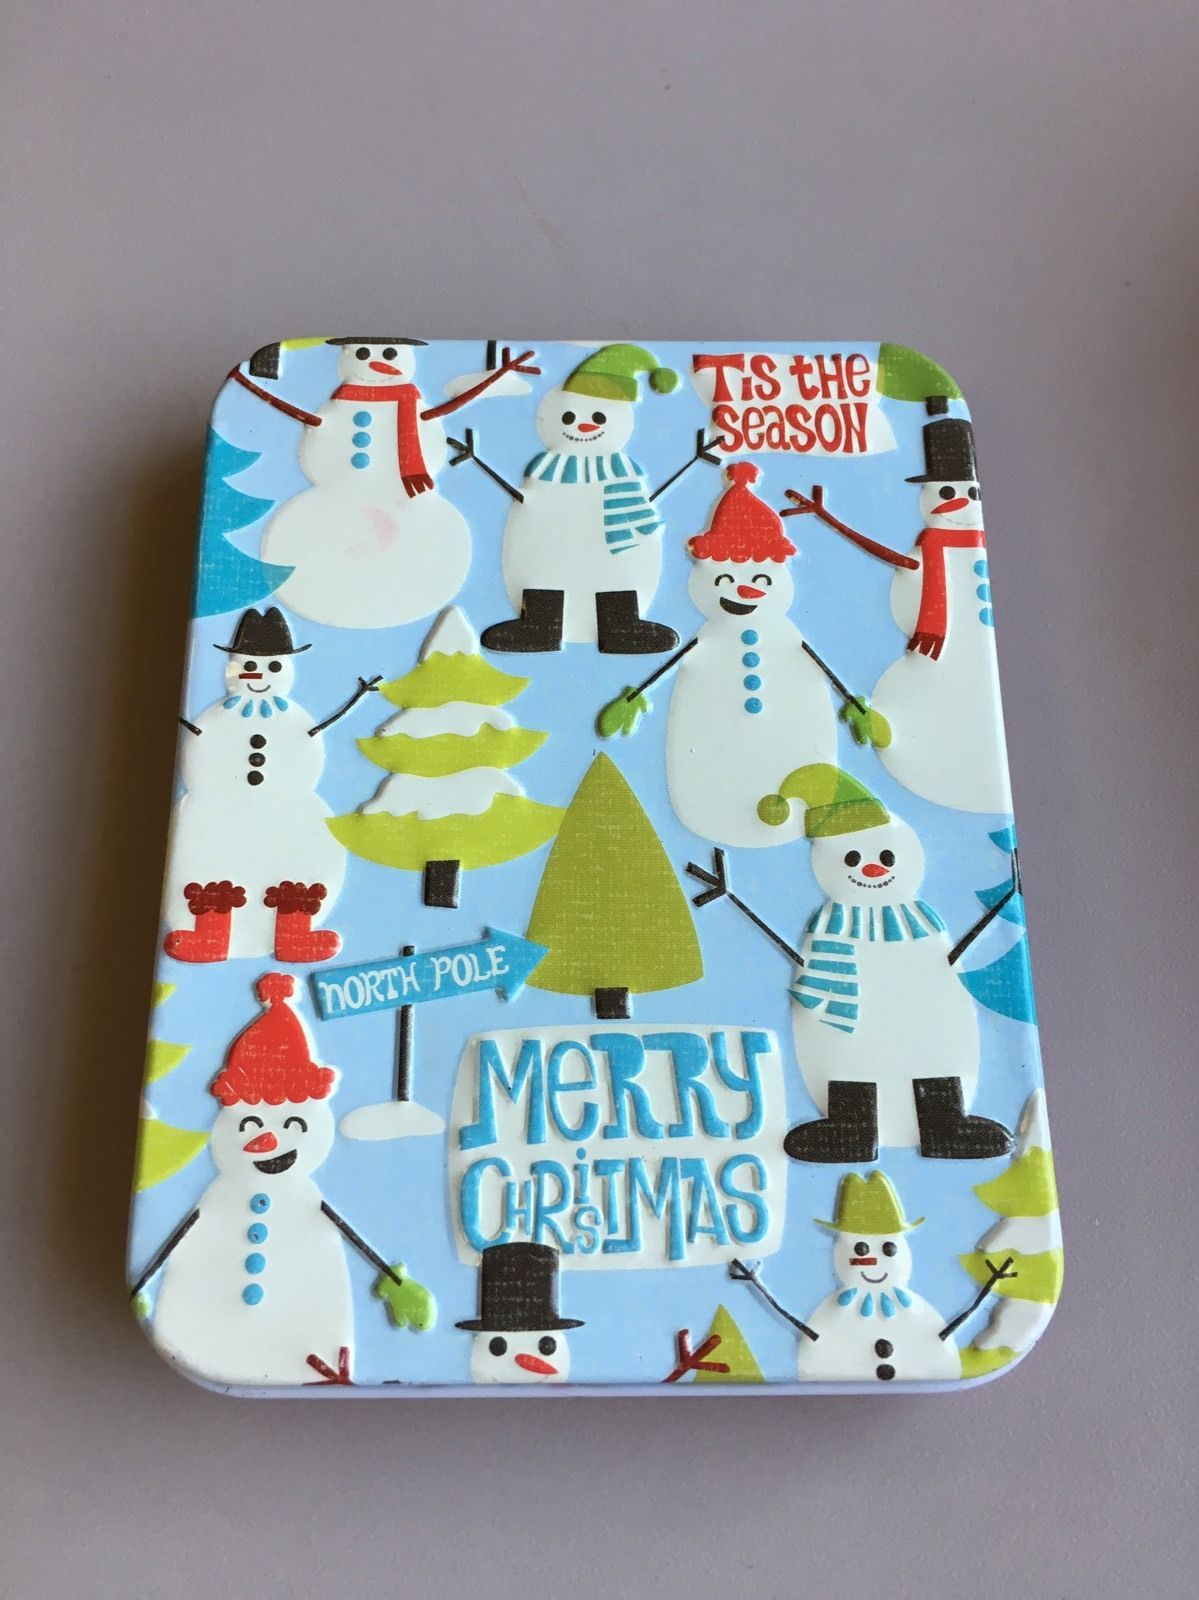 iTunes Gift Card 20 With Merry Christmas Tin Gift Box